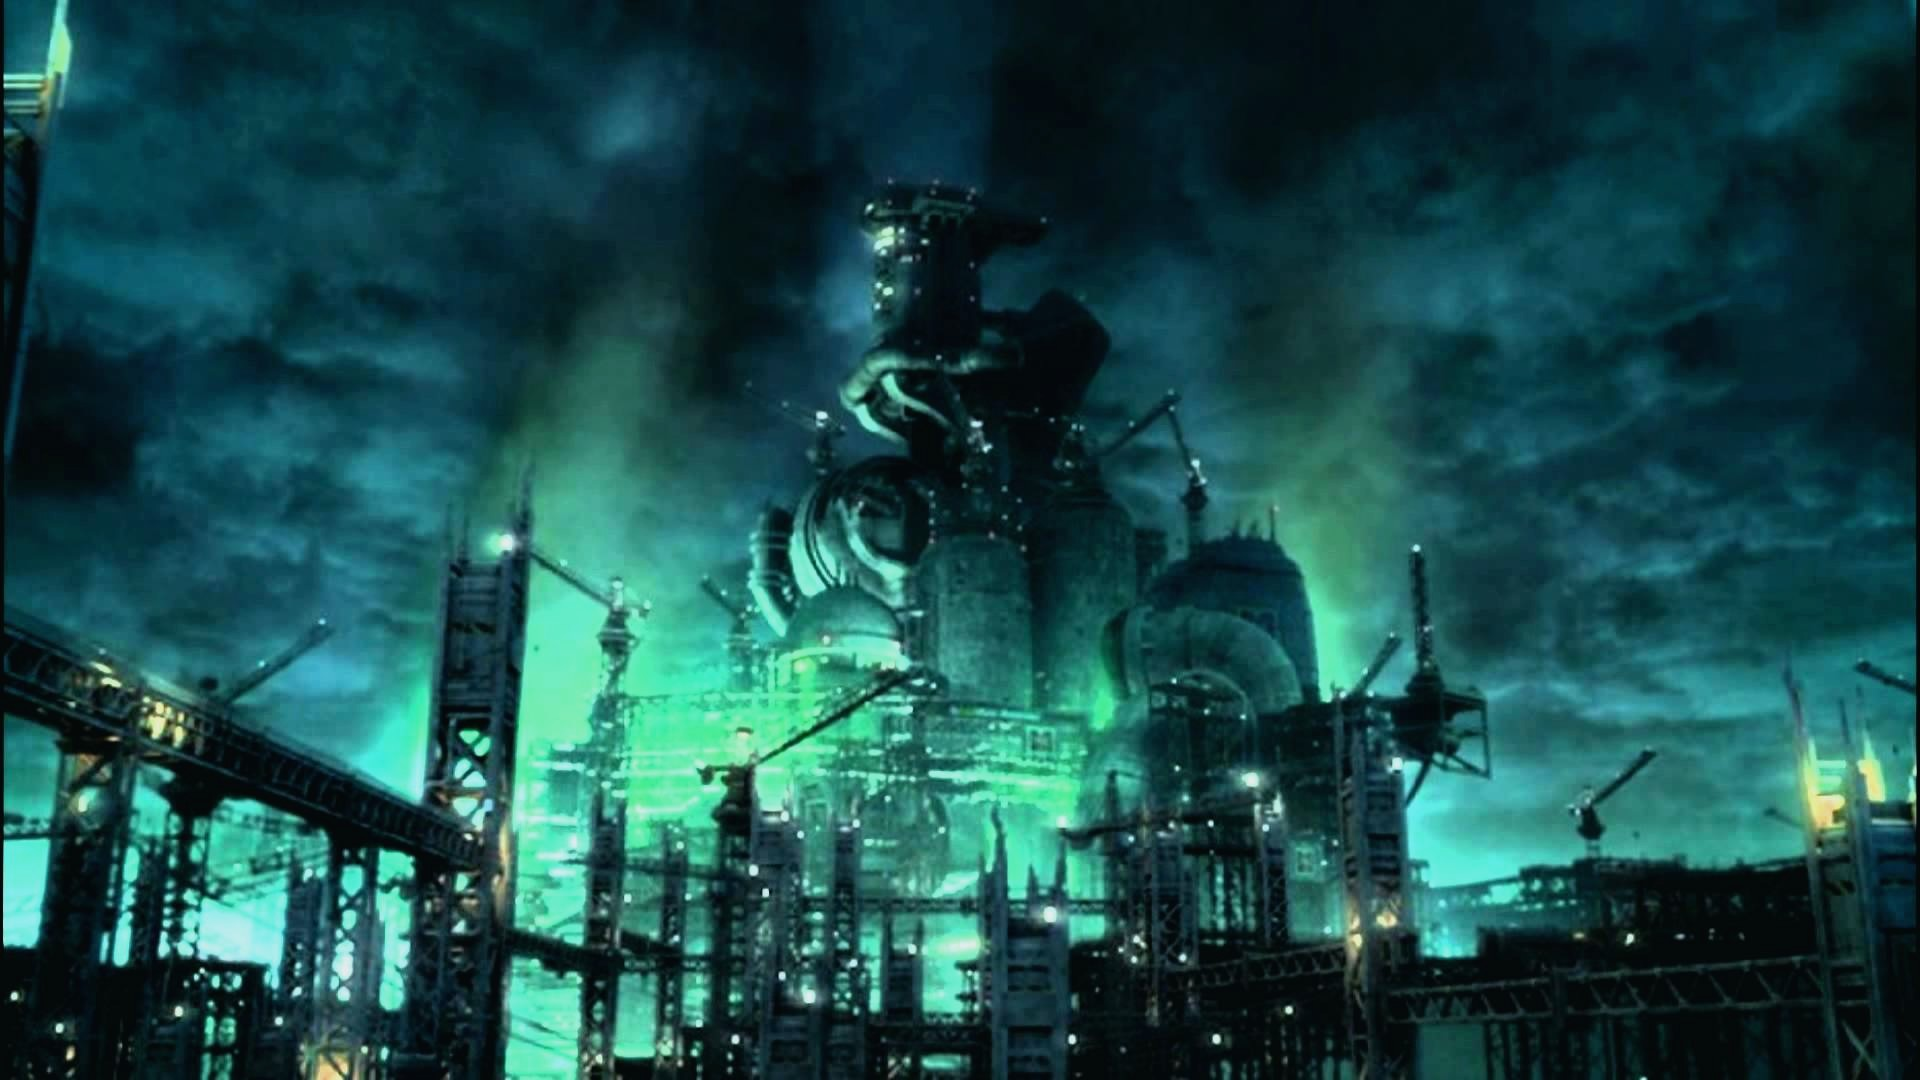 Free Download Final Fantasy Vii Wallpapers Hd Download 1920x1080